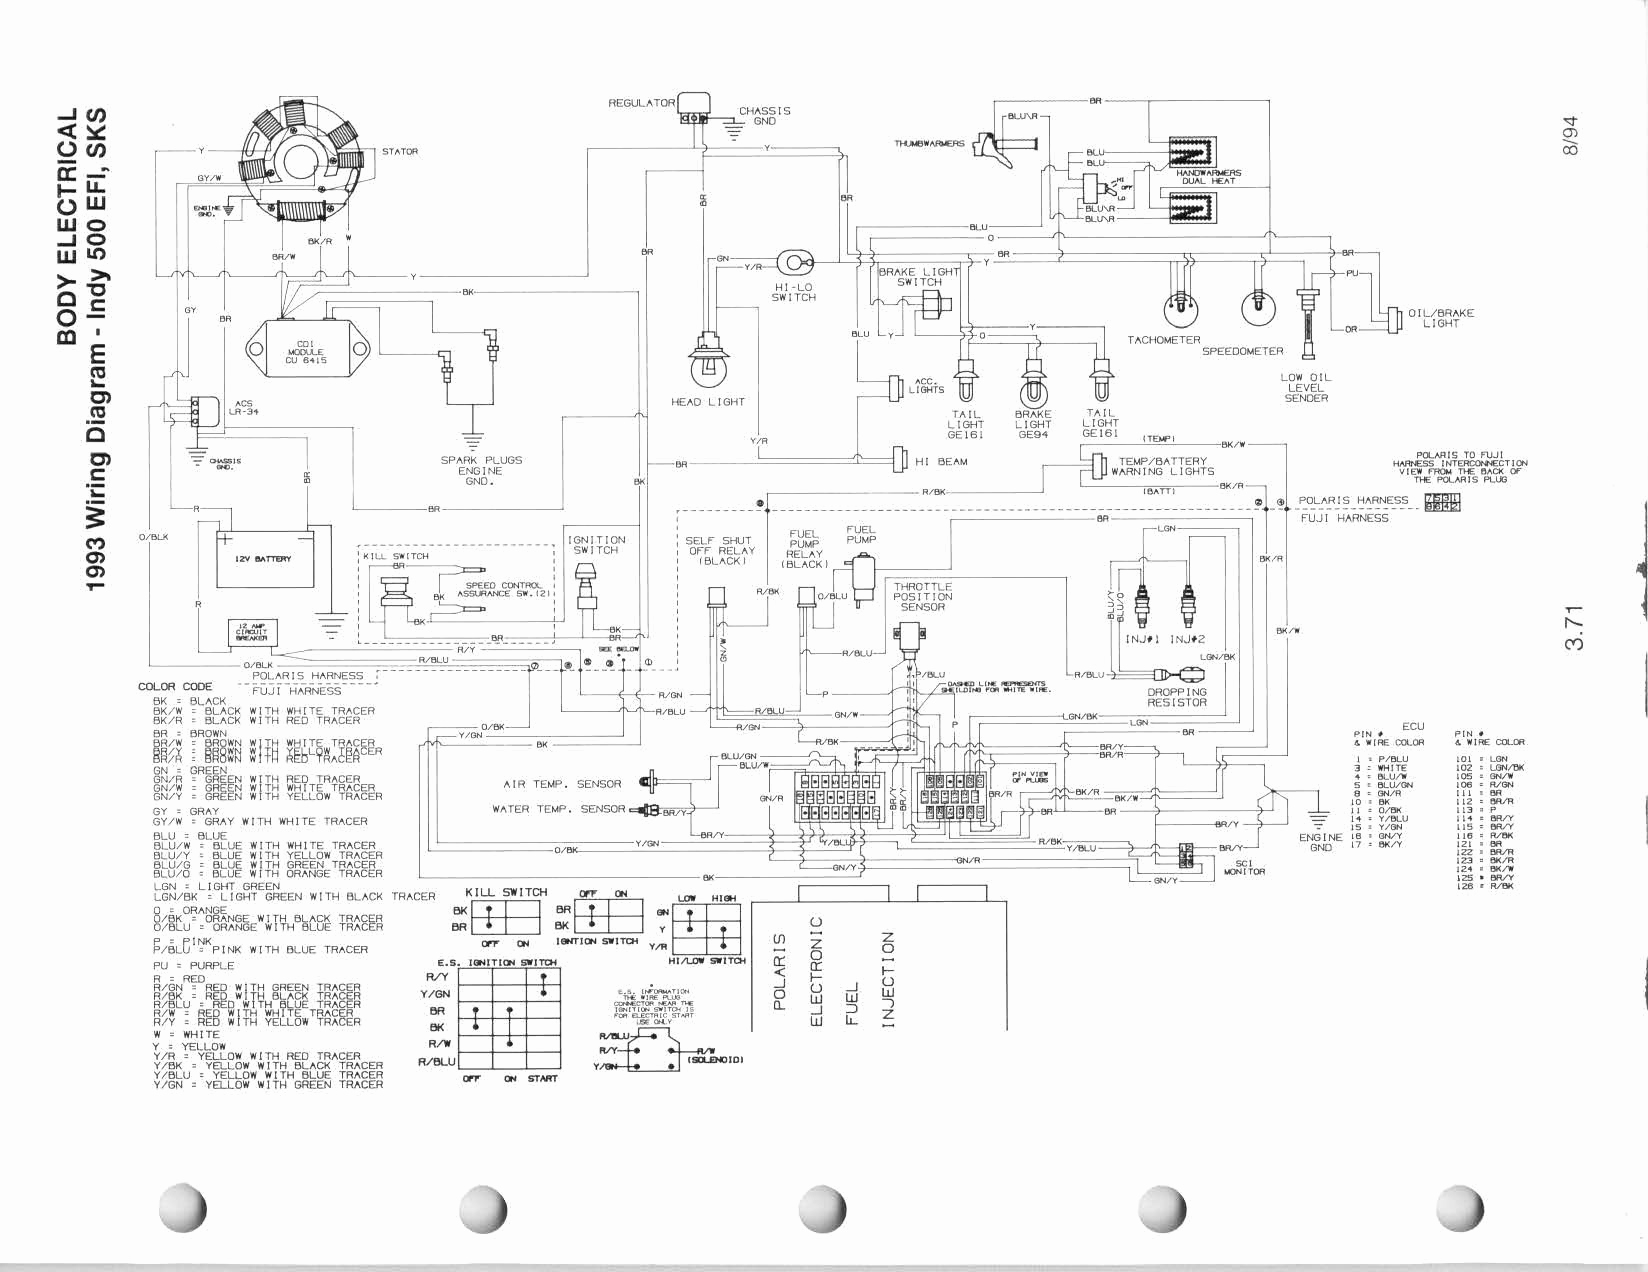 2007 Polaris Rmk Wiring Diagram